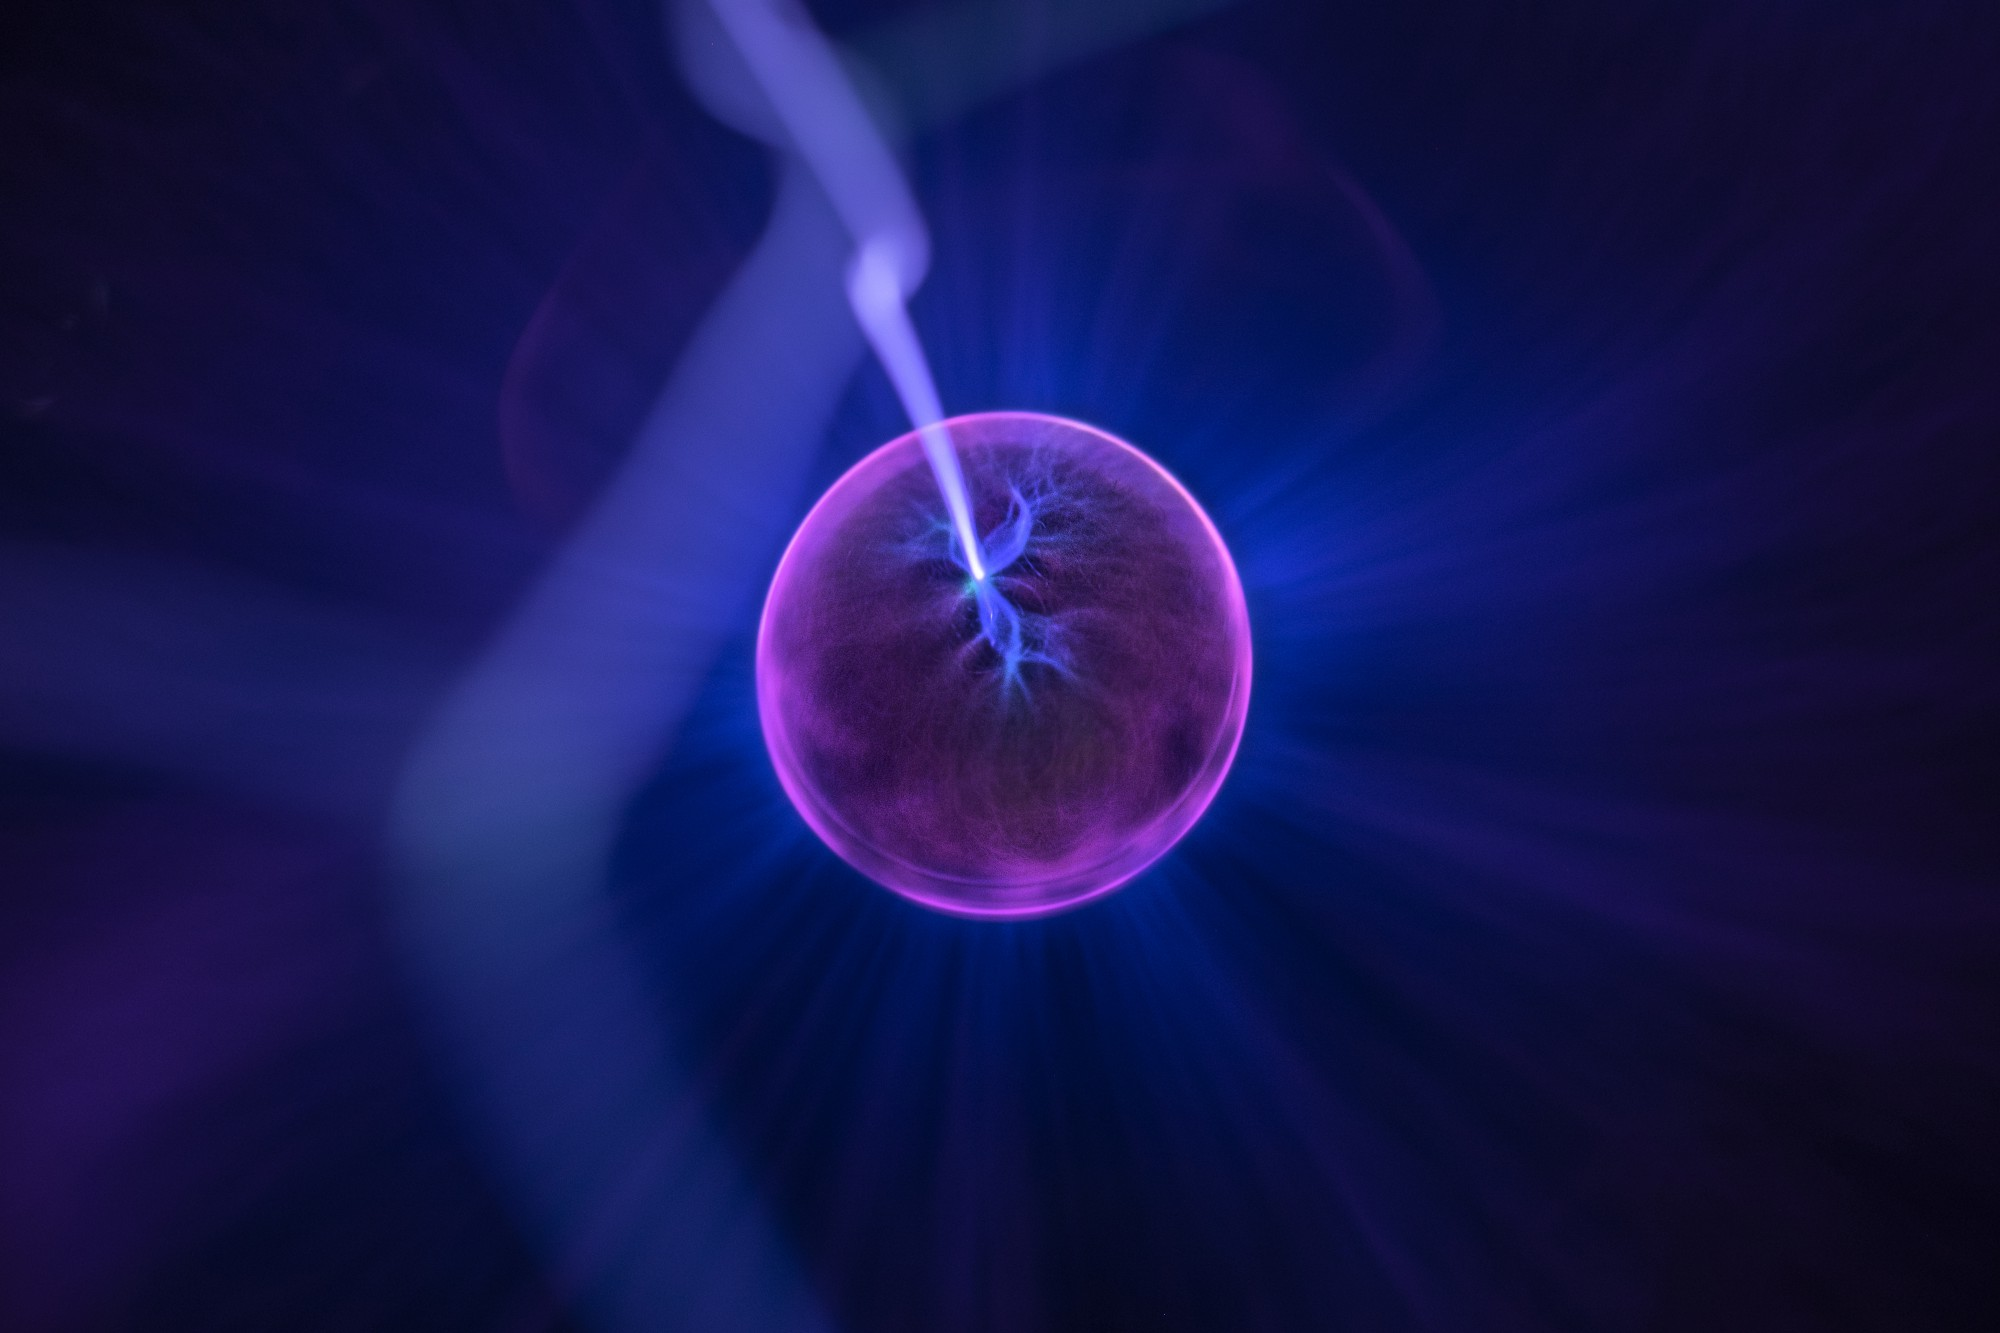 a spark of lightening pierces a purple cylinder in a deep blue background